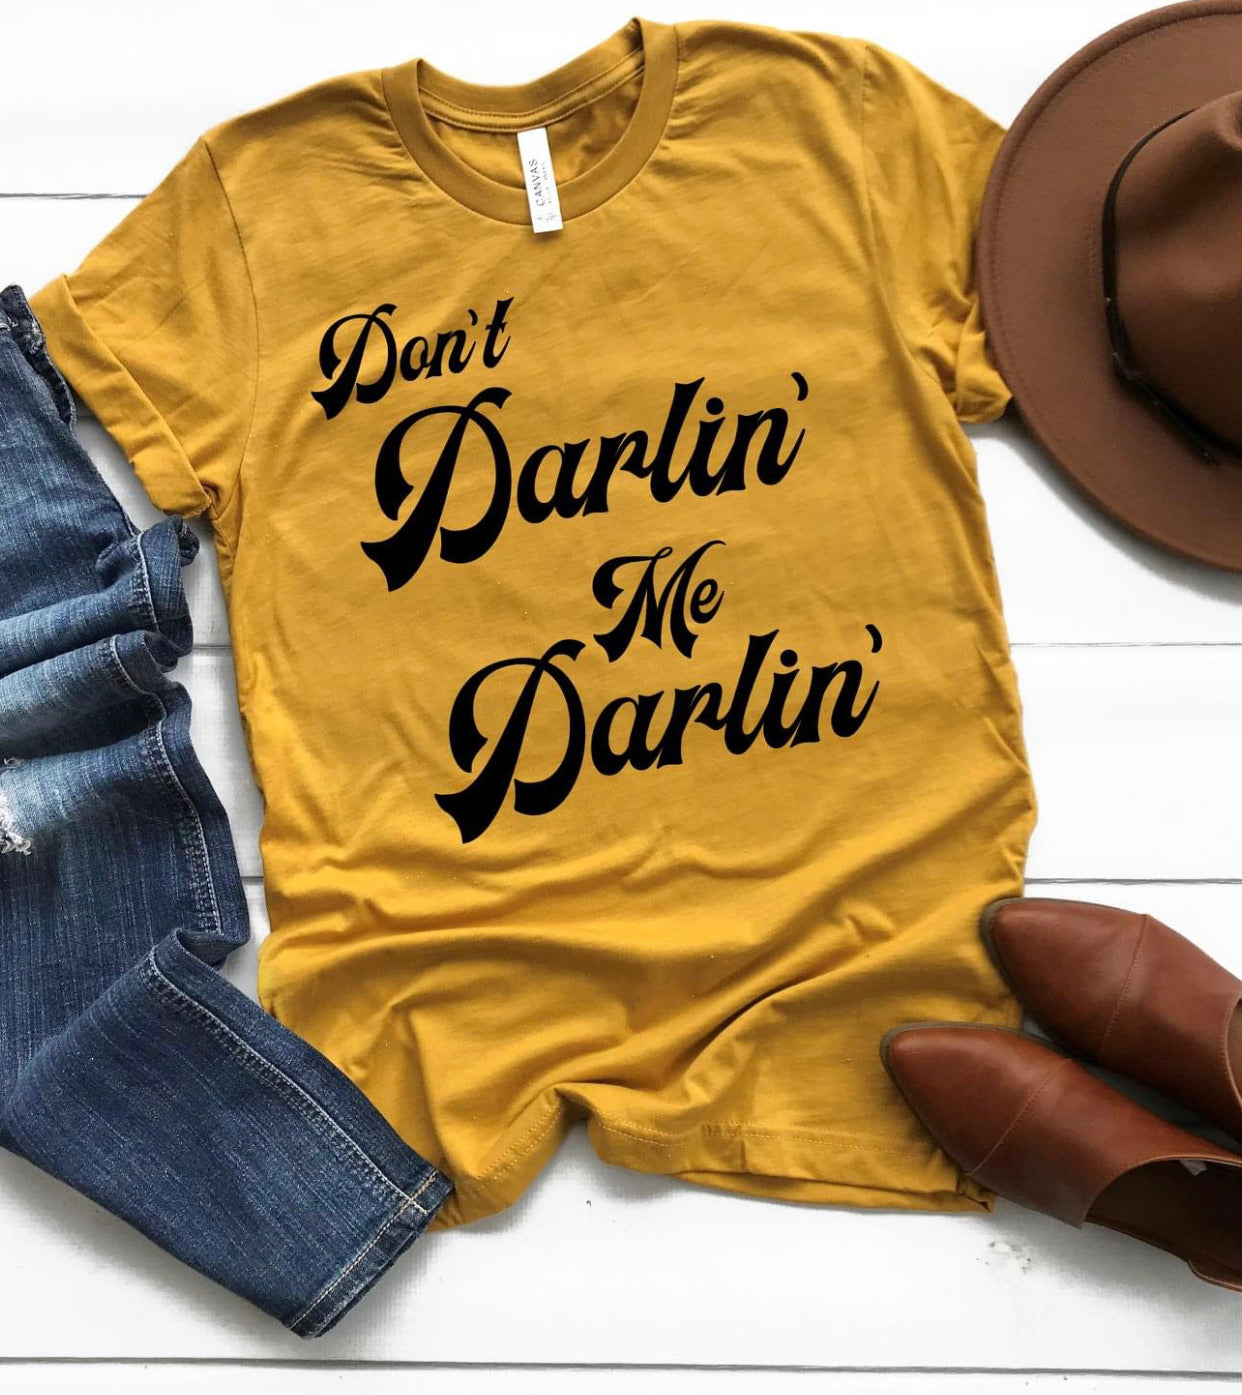 Don't Darlin' Me Darlin' Tee